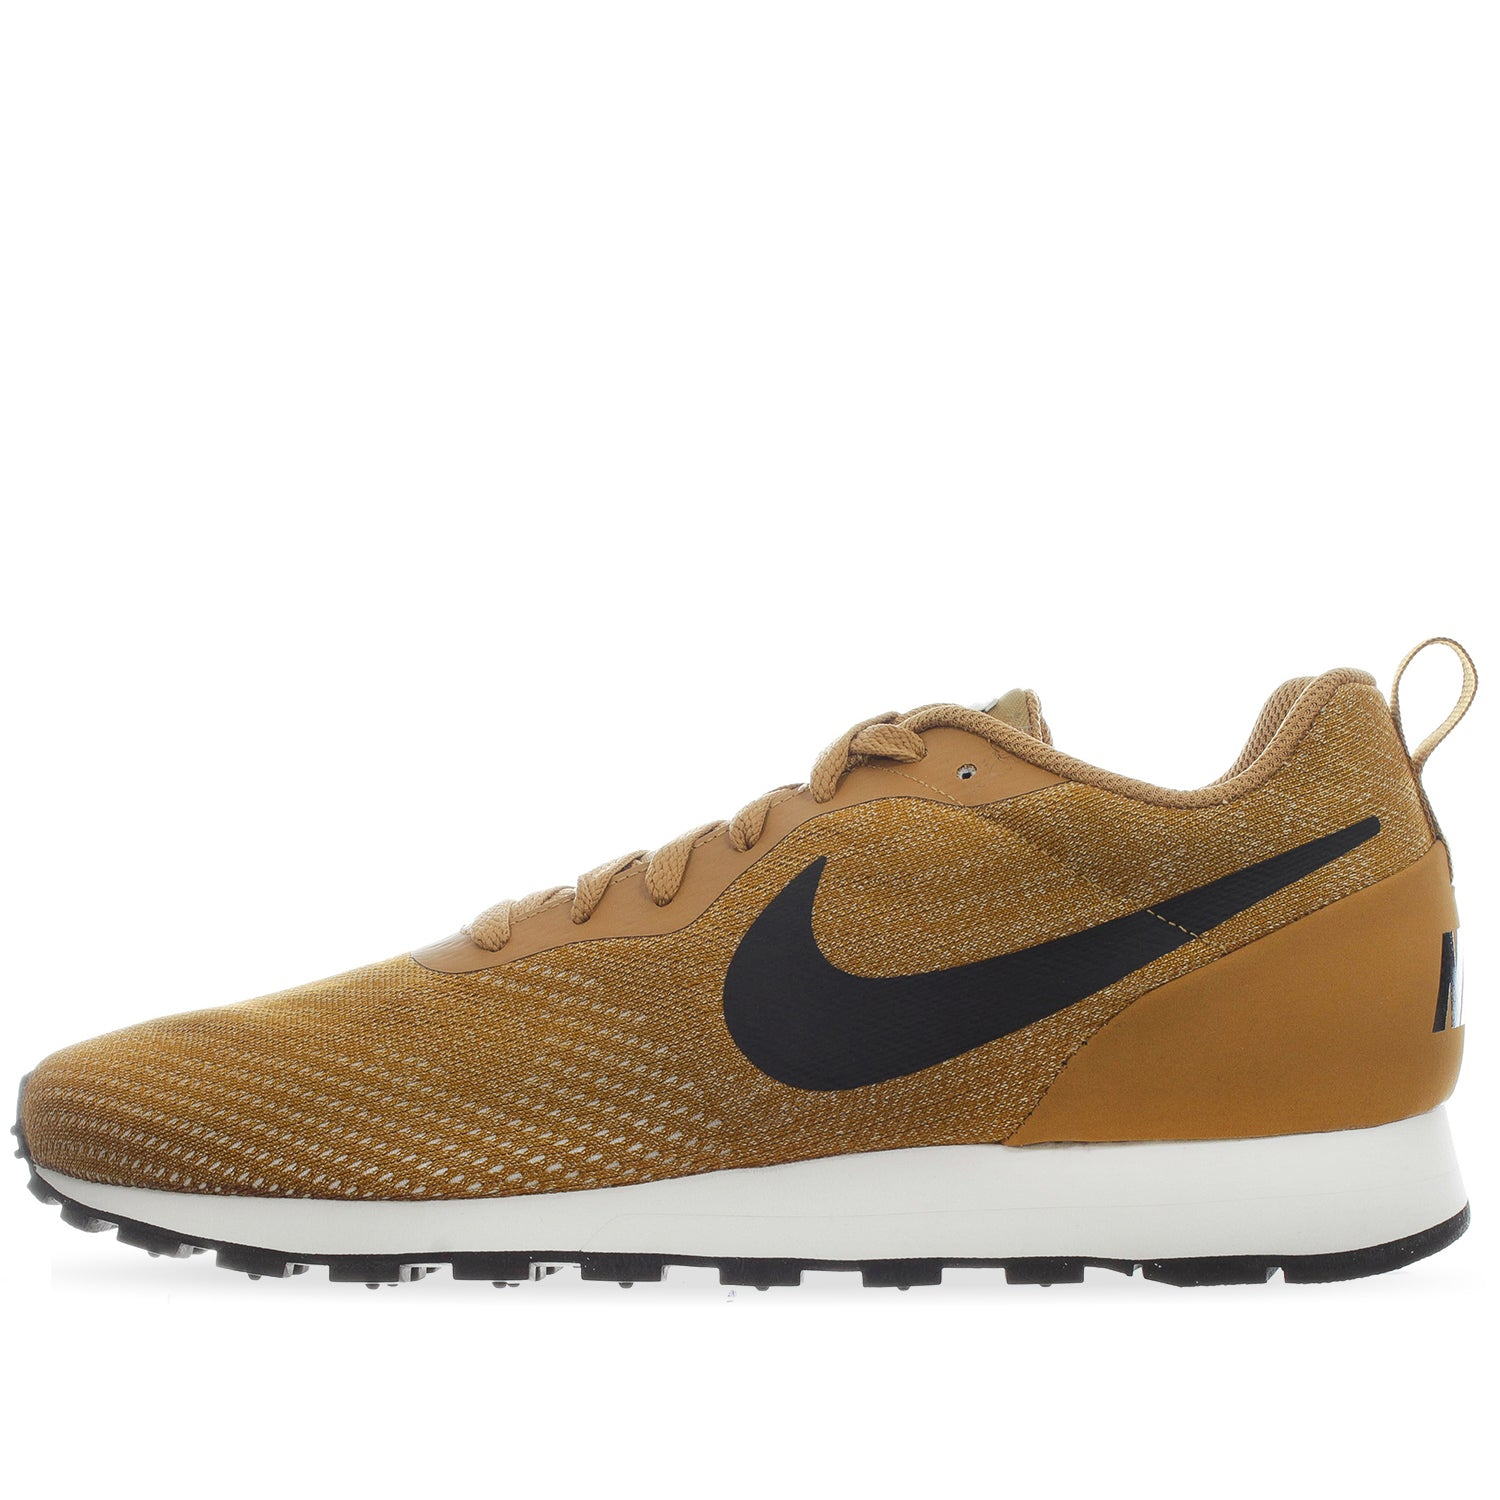 8a6cc86148c Tenis Nike MD Runner 2 ENG Mesh - 916774700 - Amarillo - Hombre ...